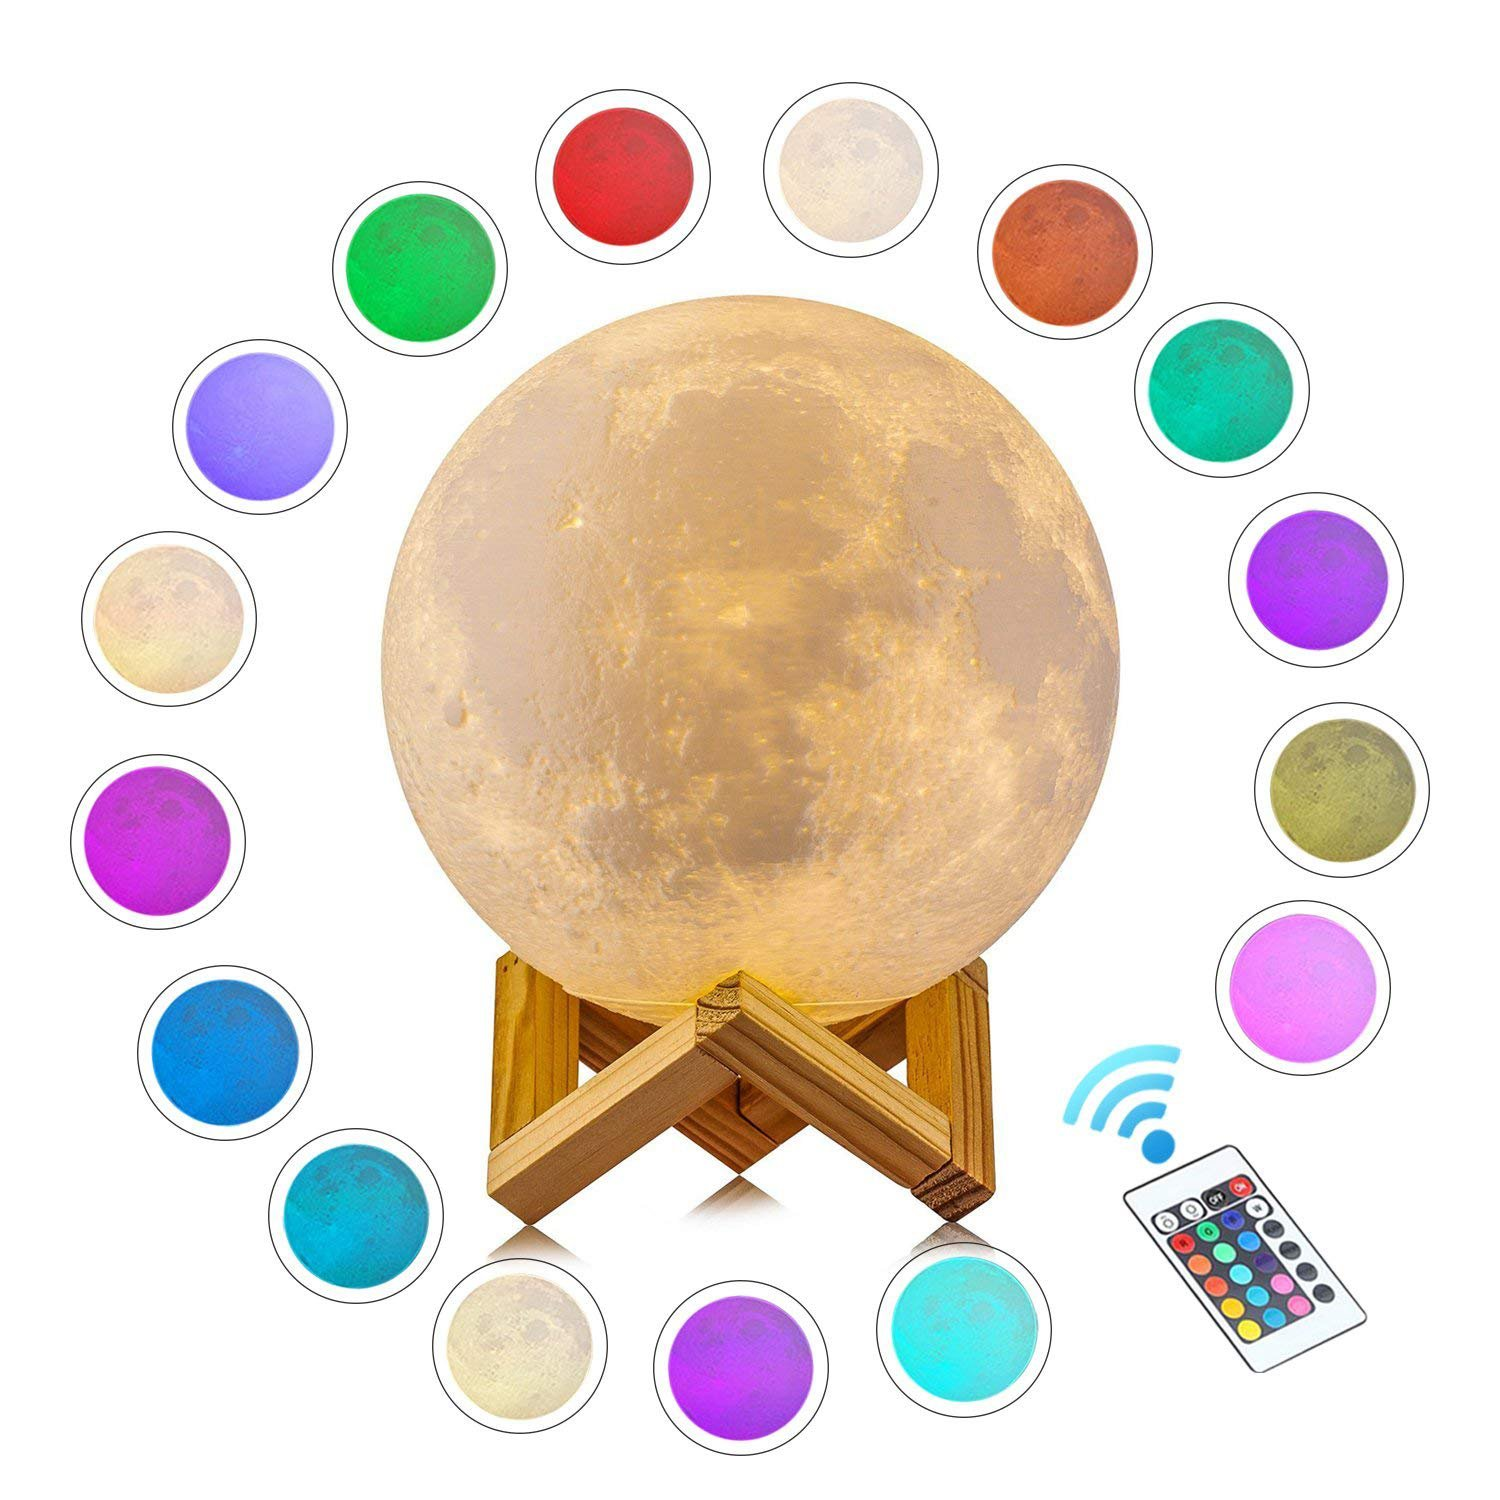 Moon Lamp Led Night Light 3D Printing, Remote & Touch Control, Dimmable RGB 16 Colors Kids Baby Gift Home Decoration